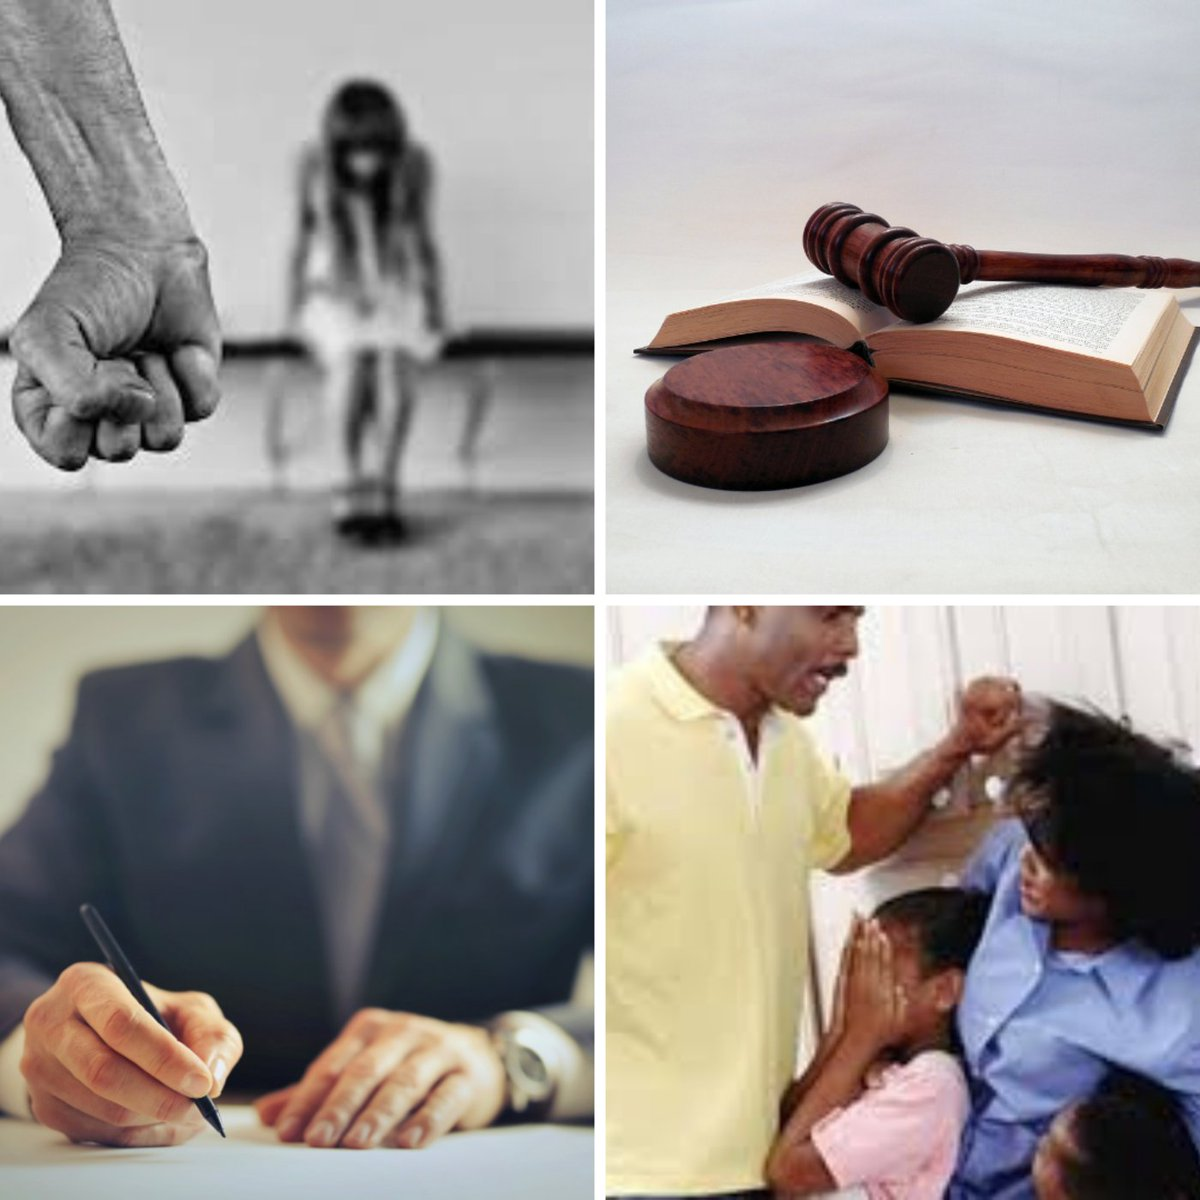 #CanYouHearMe Podcast Episode 30 - Domestic Violence, The Law, and Mental Health w/ Guest, Mr. Patrick Kilker, Esq. is now available on Spreaker.  #TimetoHelpandHeal #Mentalhealth #Domesticviolence #Law